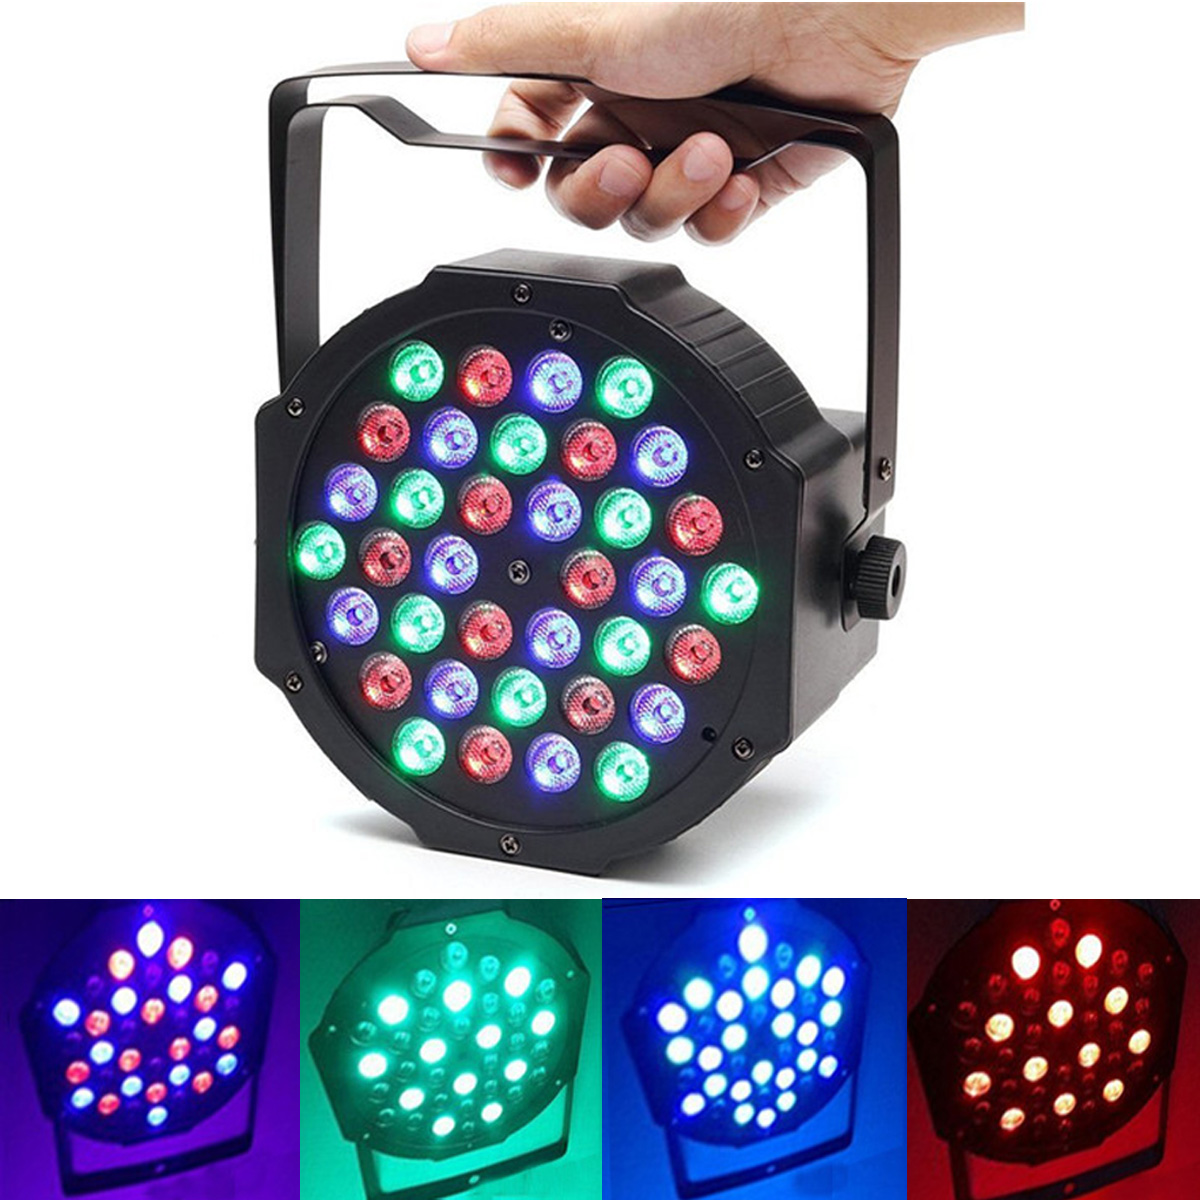 Stage Light 36W 36 LED RGB Par Light DMX512 Master Slave LED Flat DJ Equipment Controller Discos KTV Music Light djeco игра eduludo цифры djeco